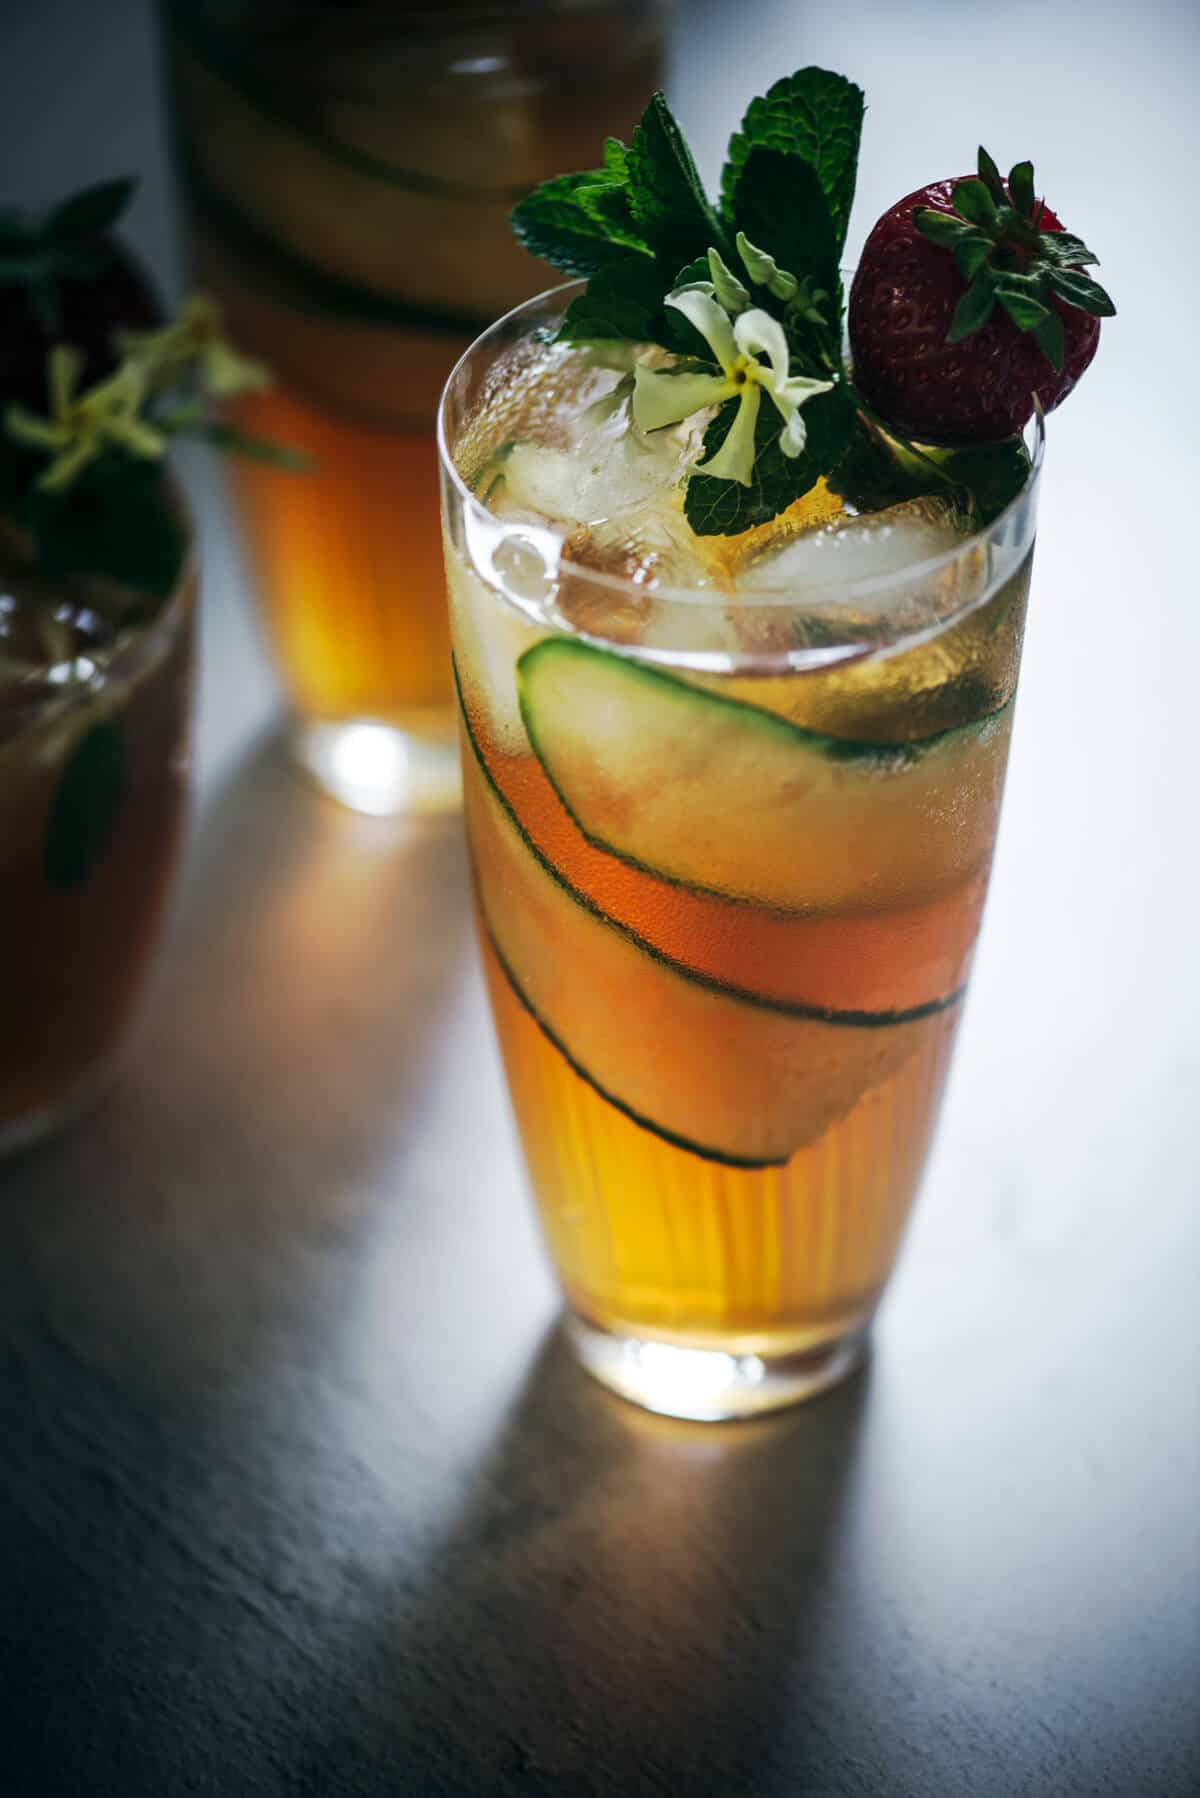 High ball glass with cocktail and garnishes